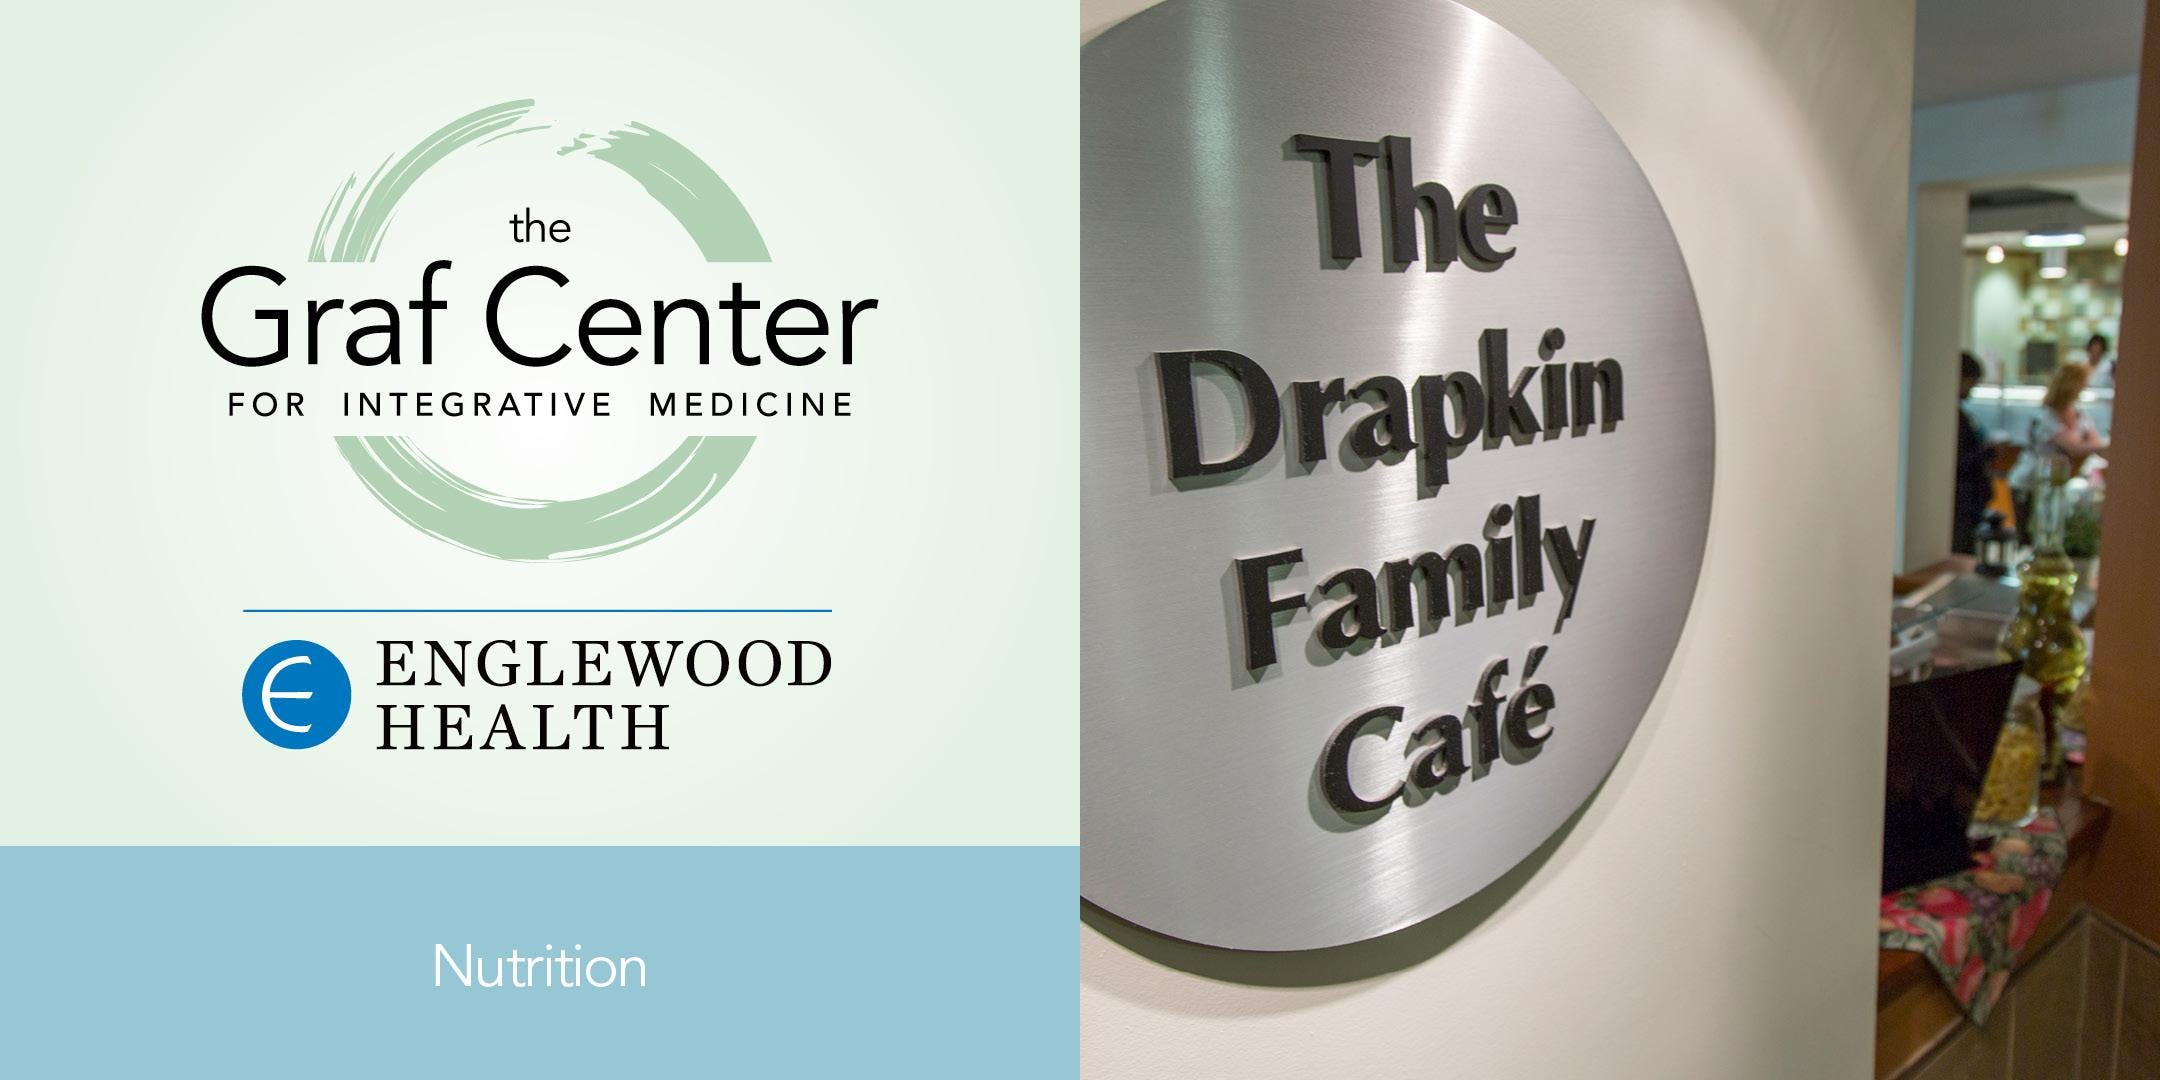 More info: Nutrition Food Tours of the Englewood Health Café